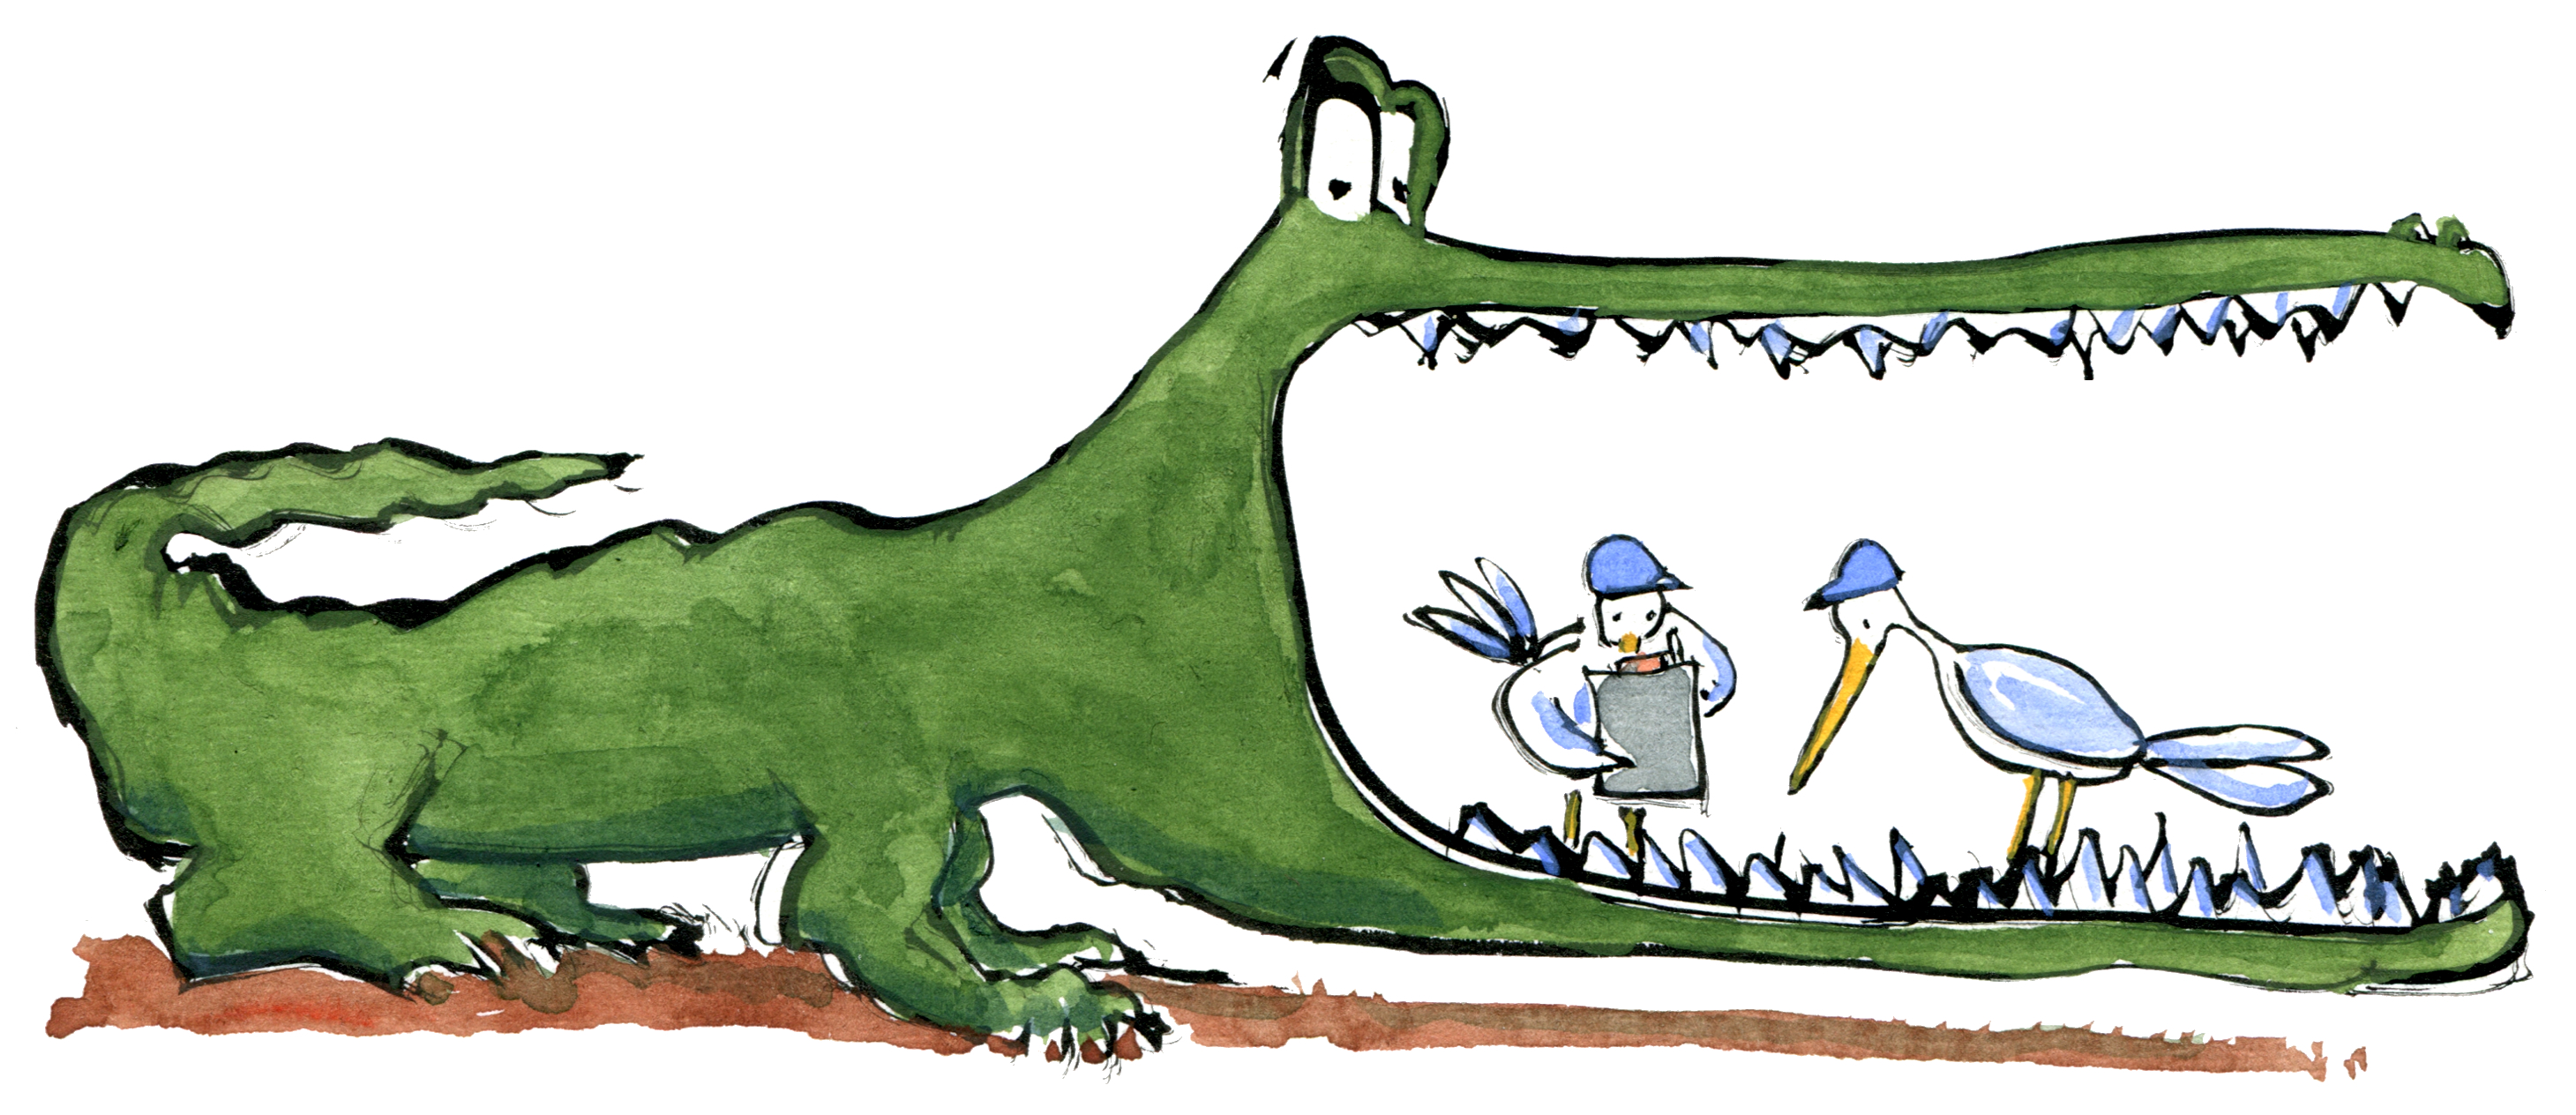 illustration of a Crocodile getting teeth fixed by birds